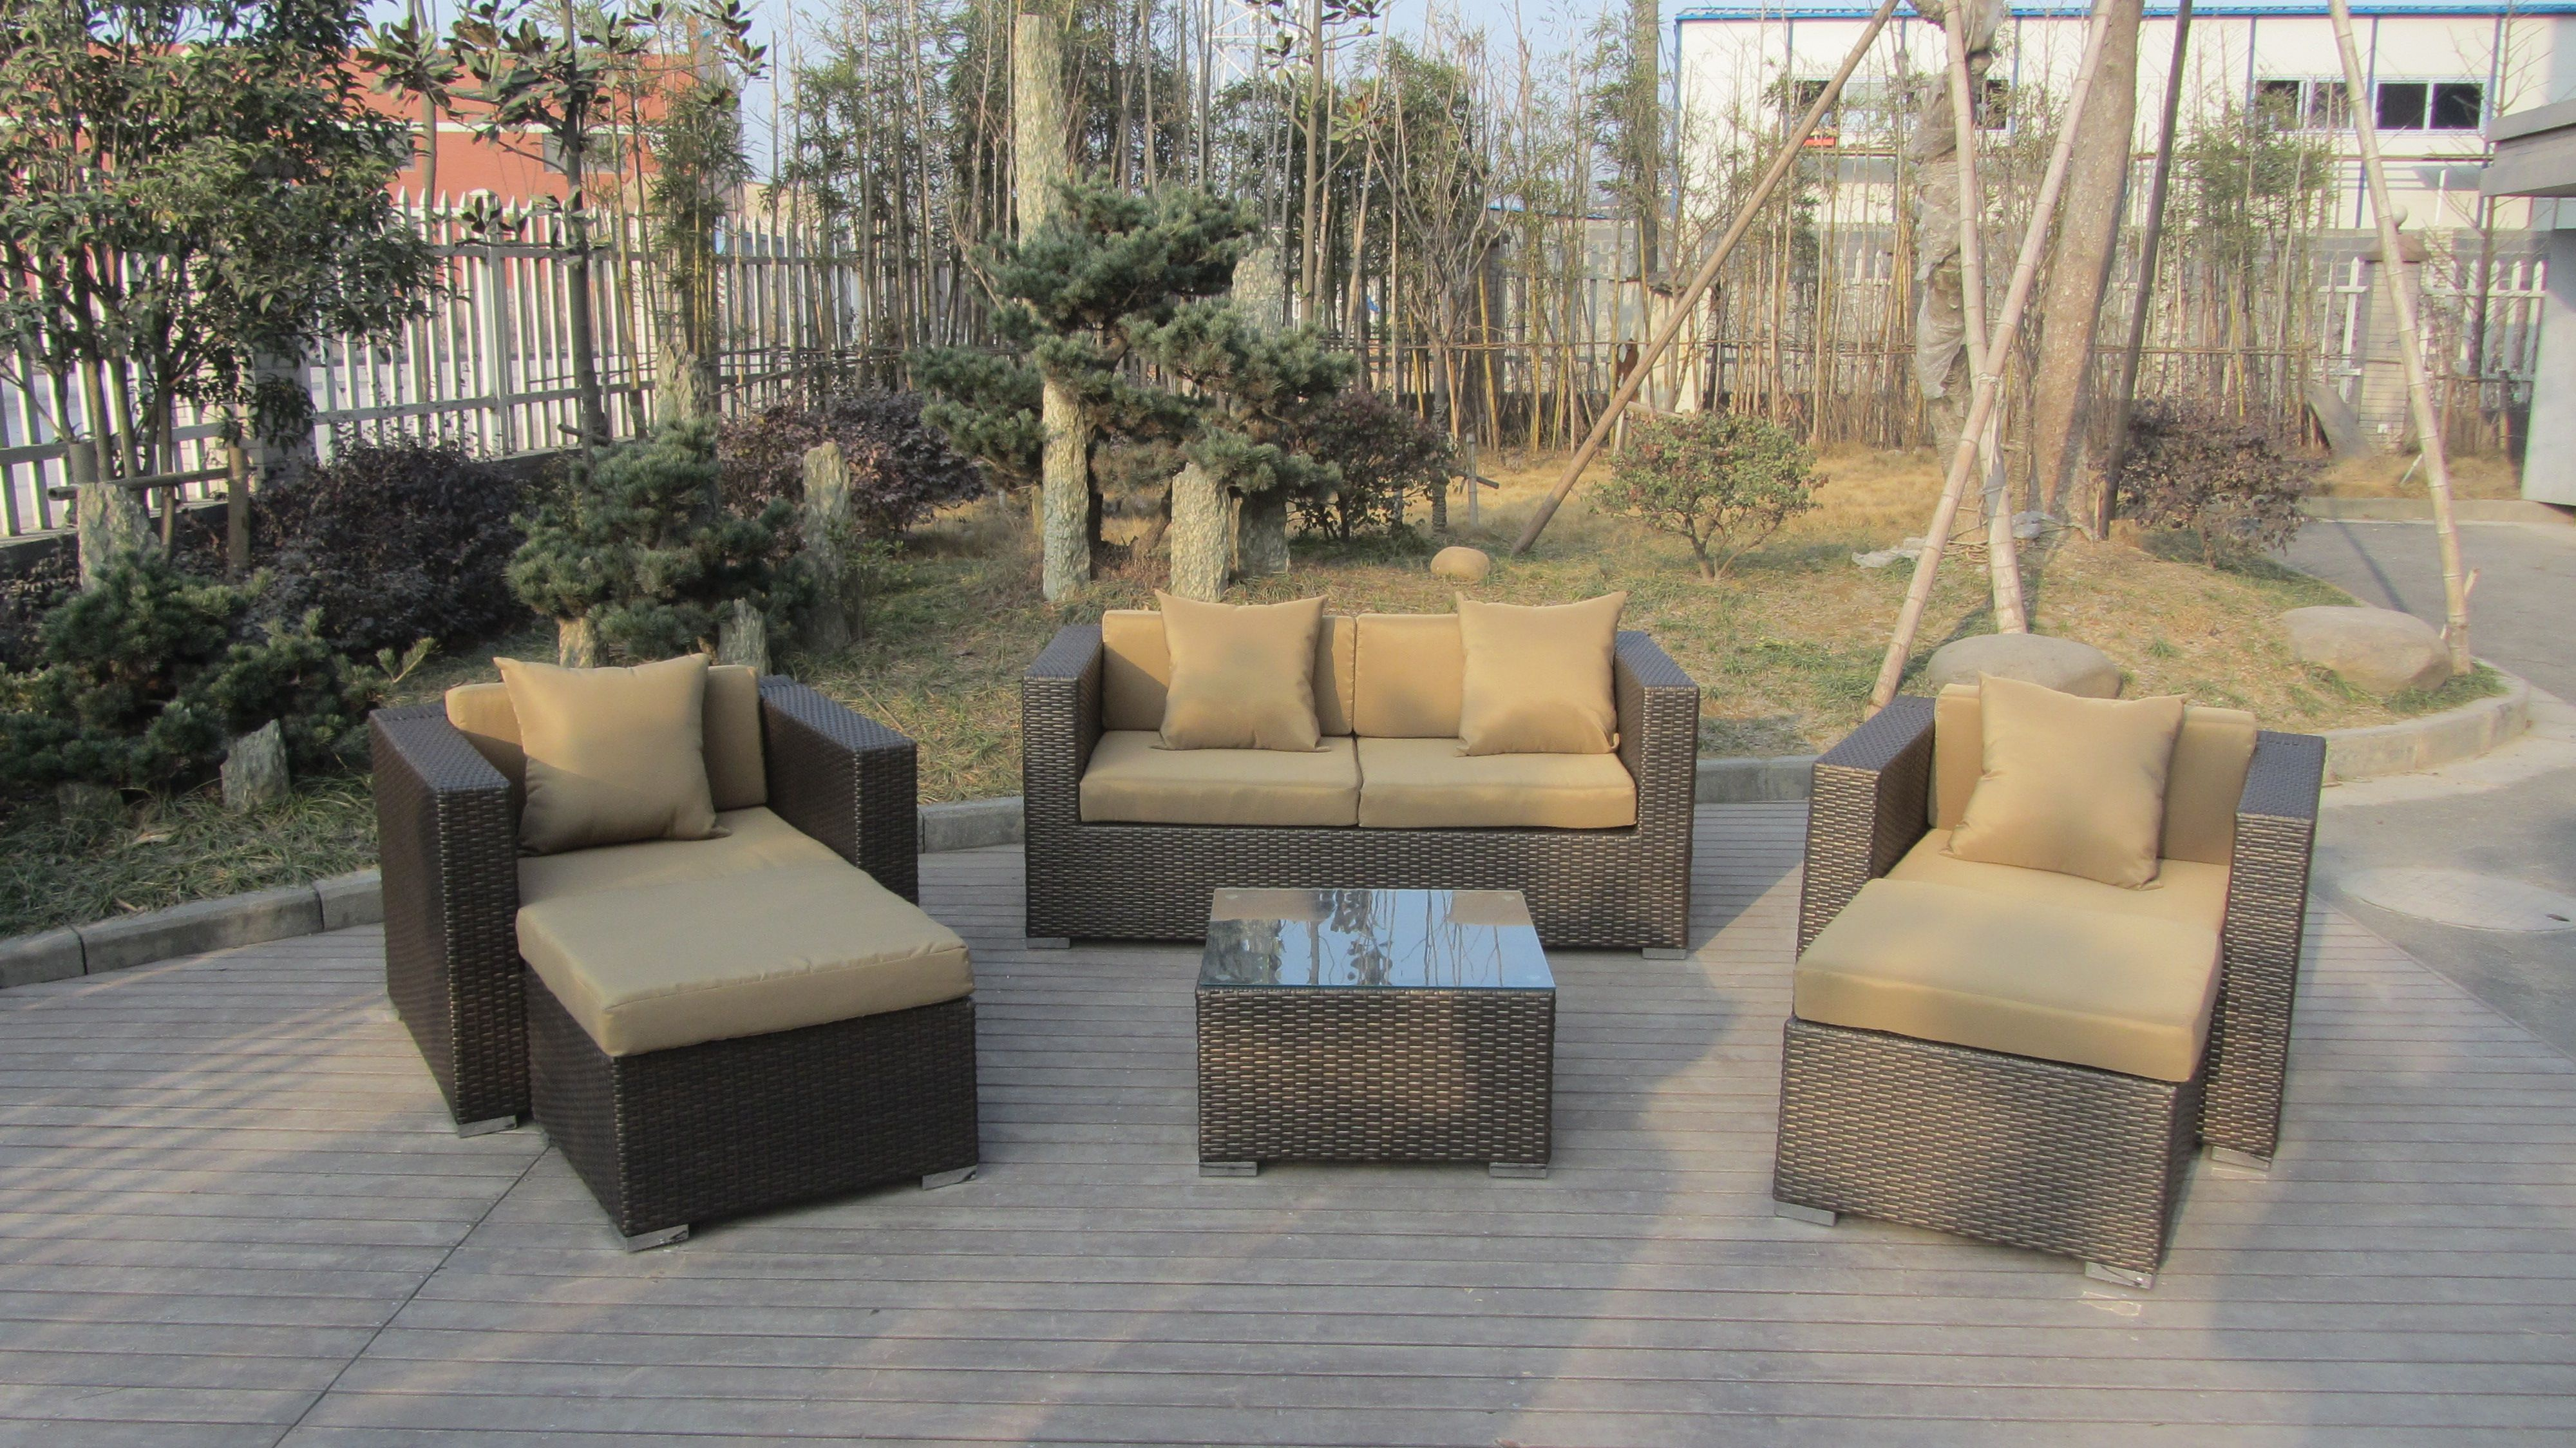 Tg 7088 Resin Wicker Sectional Outdoor Furniture China Trygo